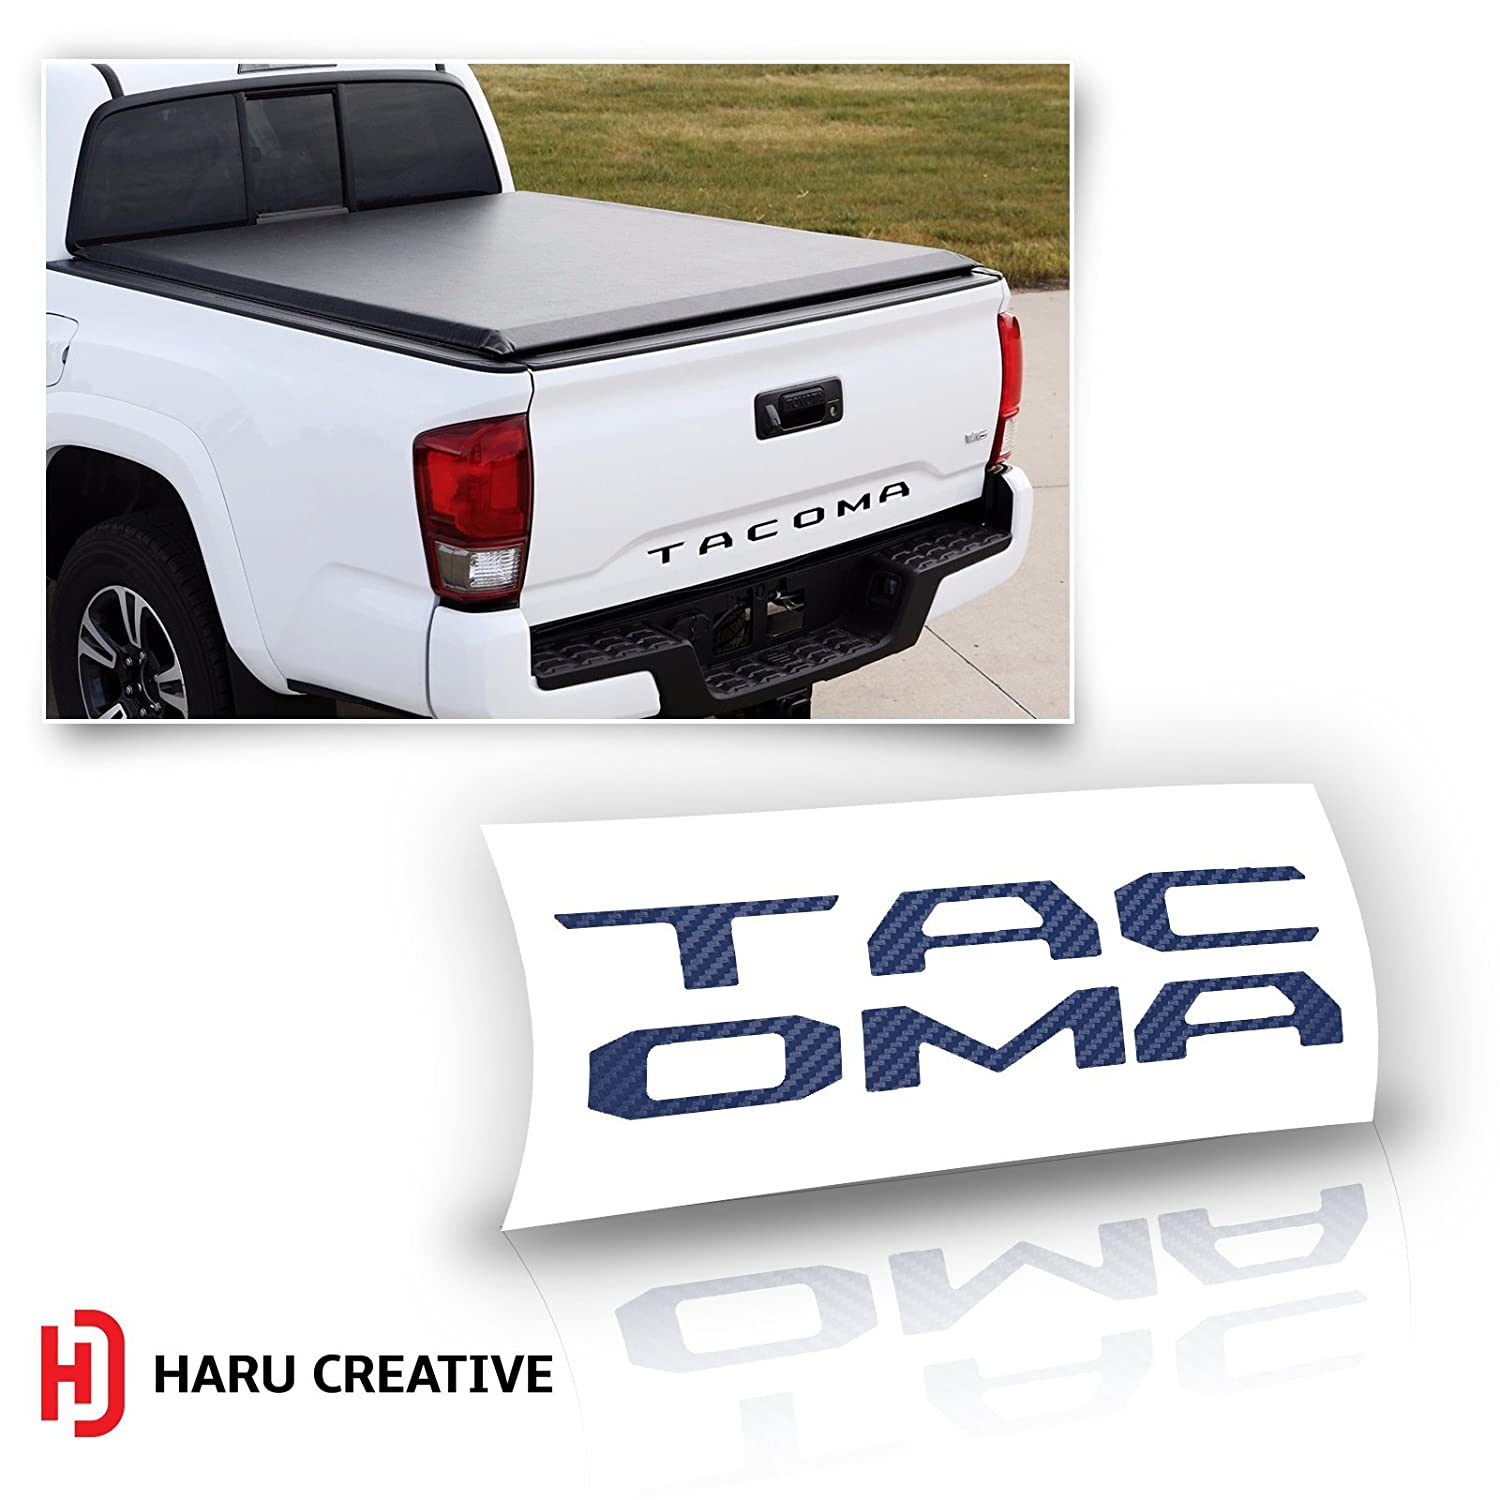 Haru Creative Rear Trunk Tailgate Letter Insert Decal Sticker Compatible with and Fits Toyota Tacoma 2016 2017 2018 2019 Carbon Fiber Silver Loyo